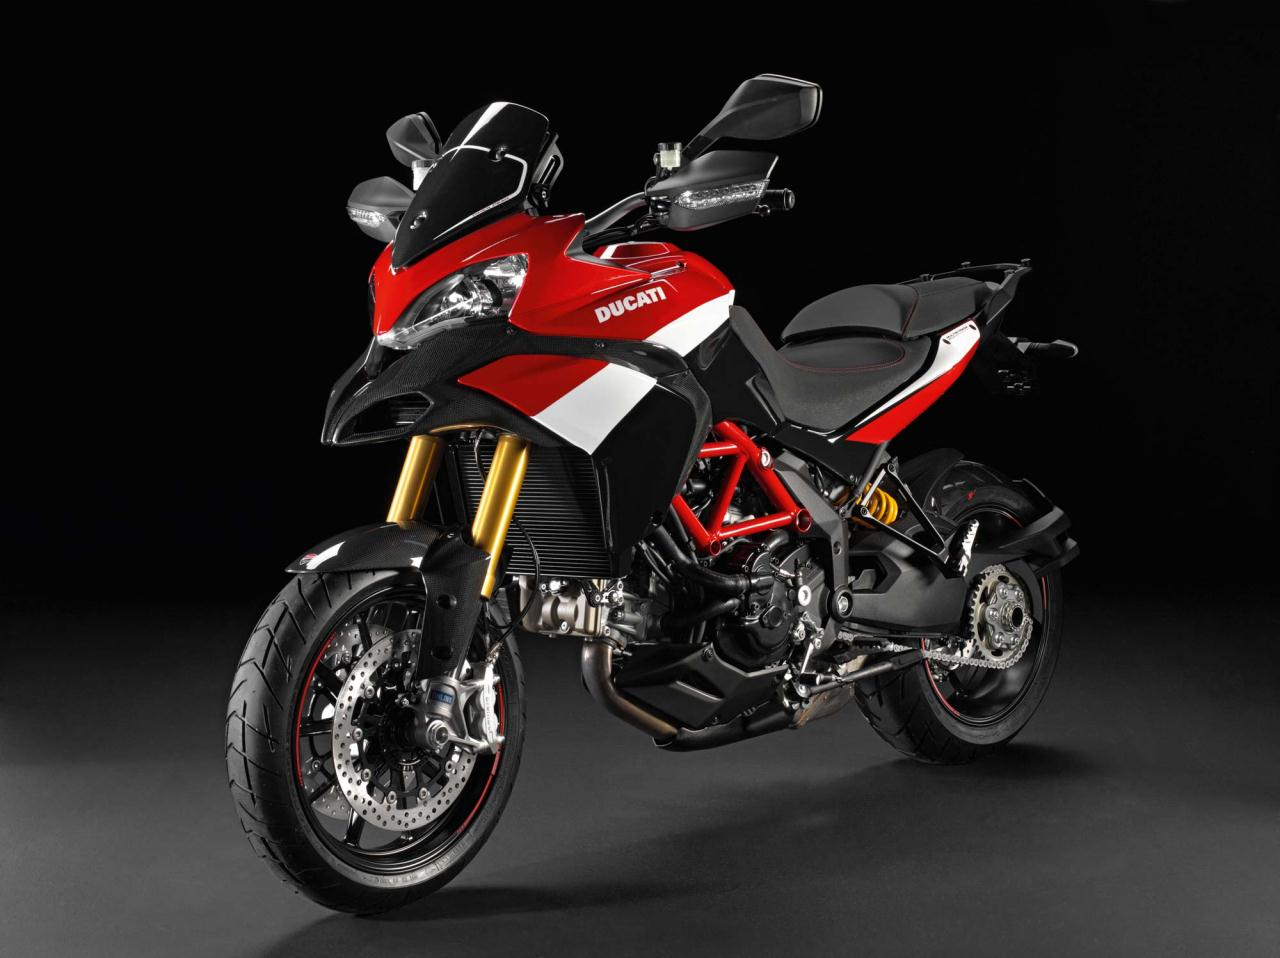 Ducati Multistrada 1200 S Pikes Peak Edition 2013 images #80022